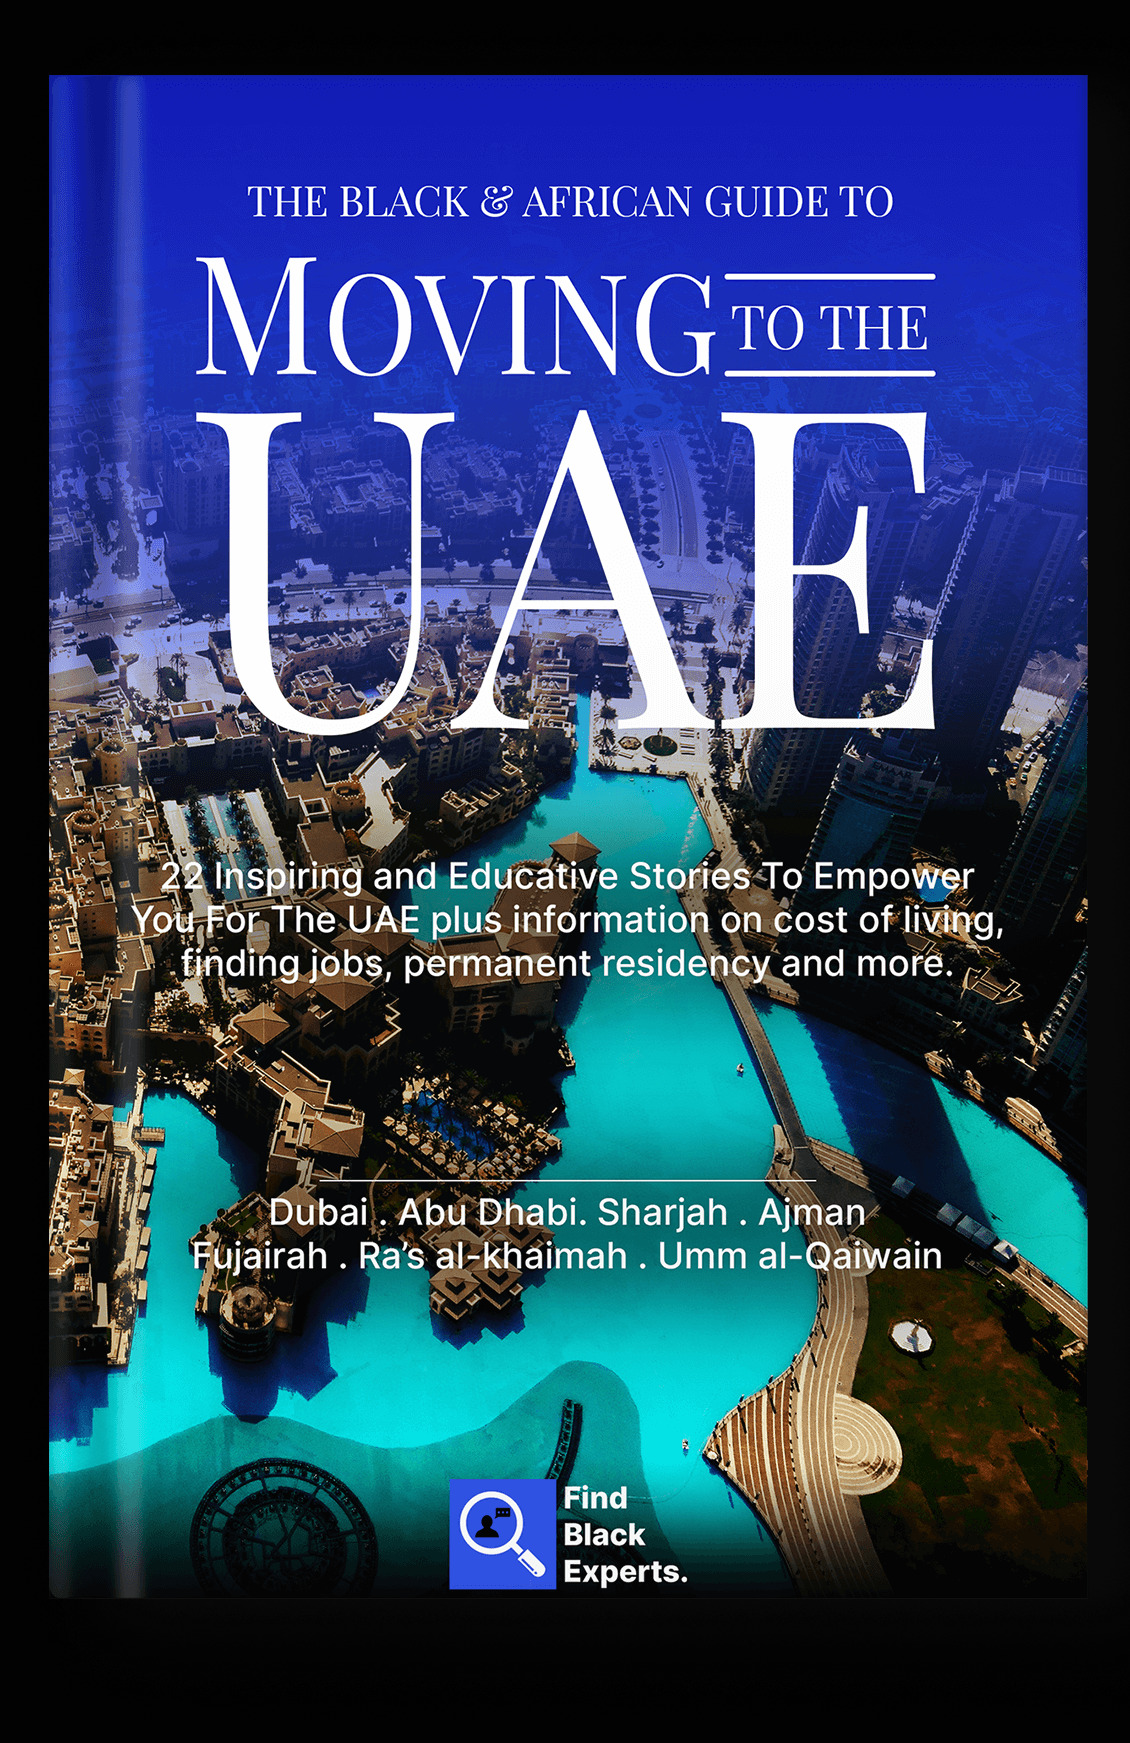 The Black and African Guide To Moving To The UAE